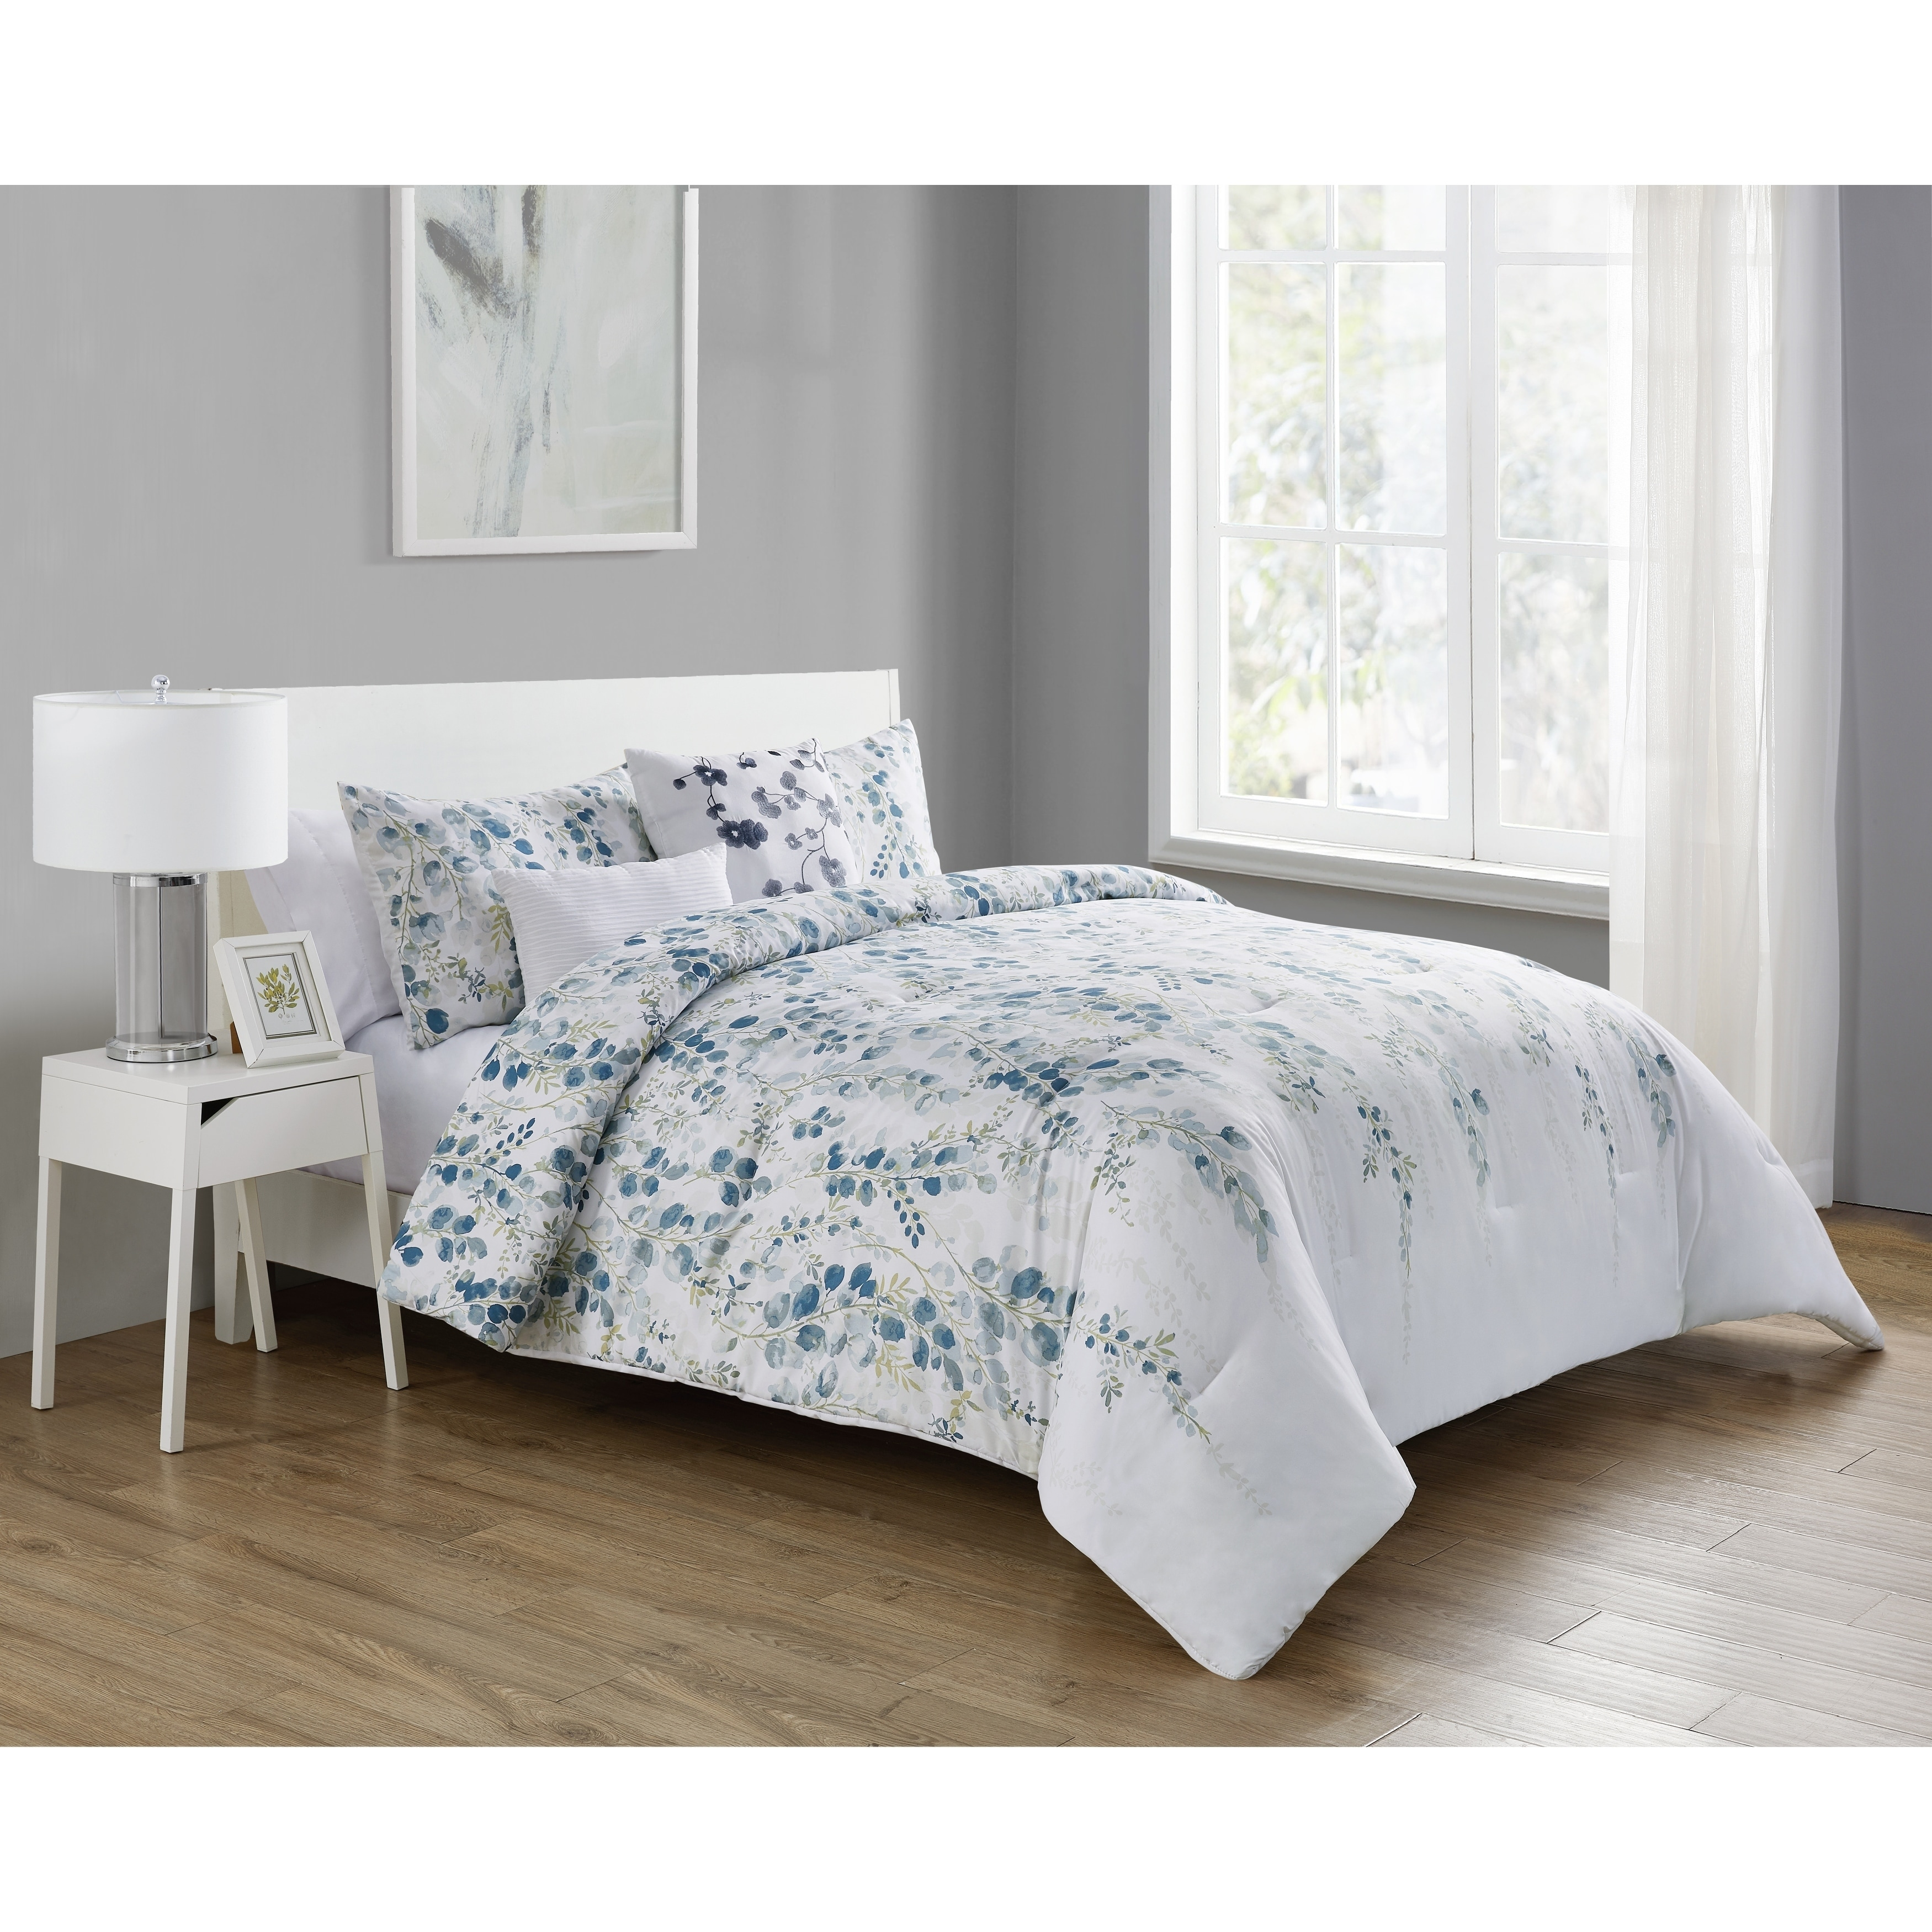 Porch Den Tracy Ann Blue And White Floral Comforter Set Overstock 30217878